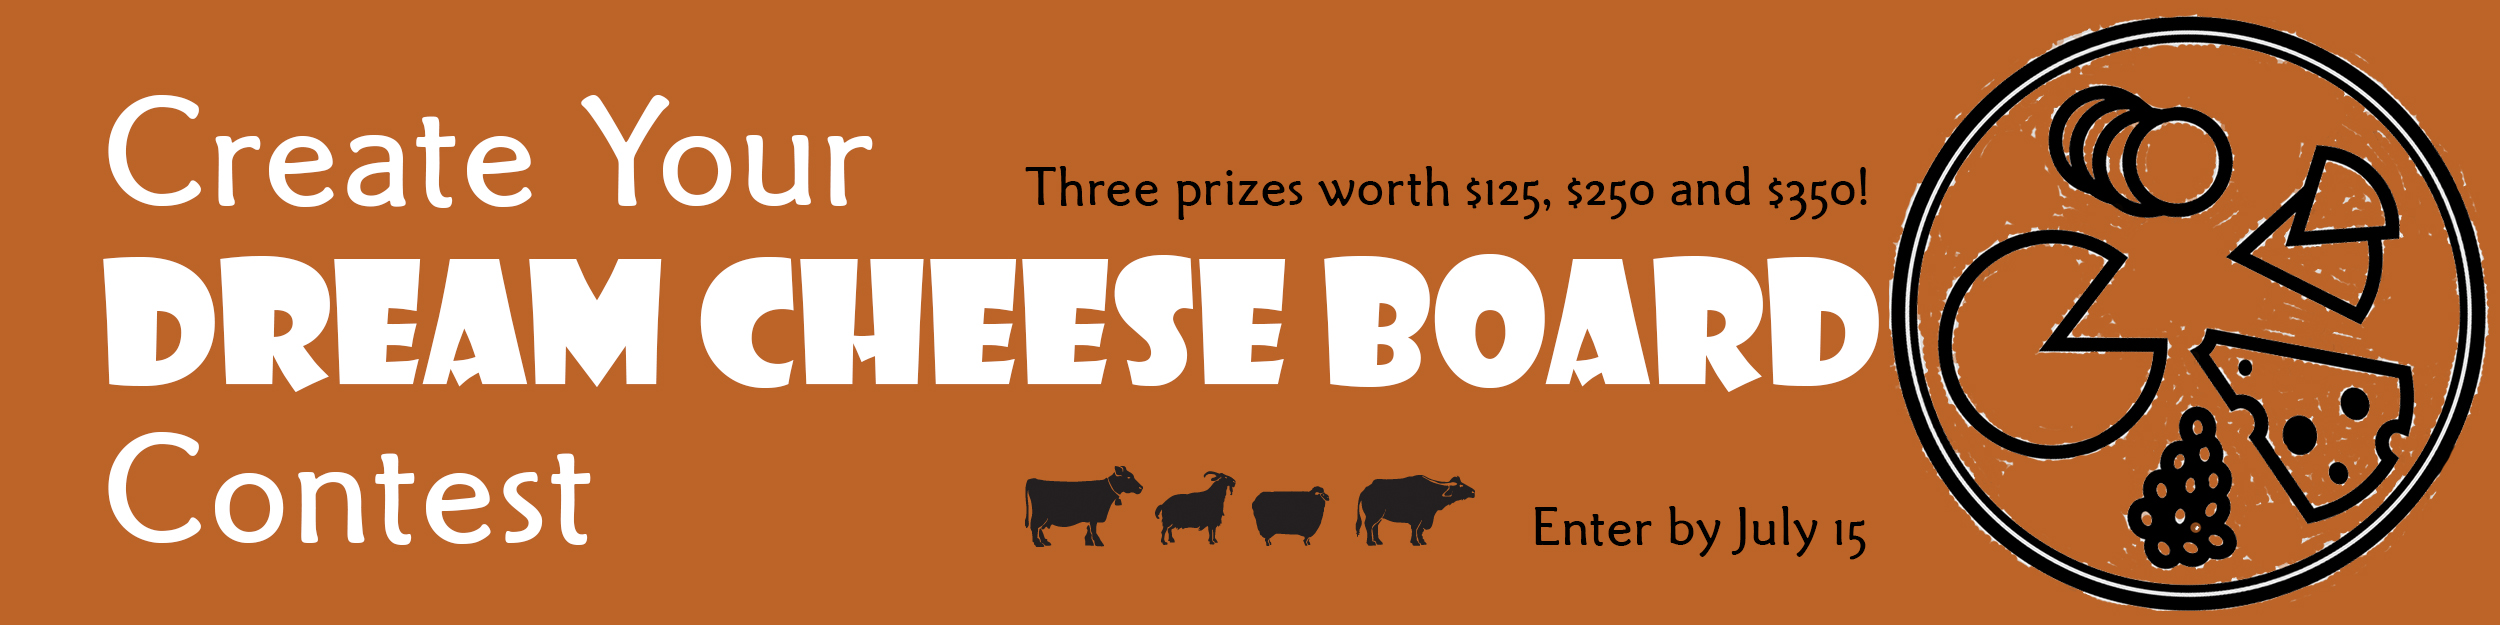 This is a banner for Fromagination's Create Your Dream Cheese Board Contest